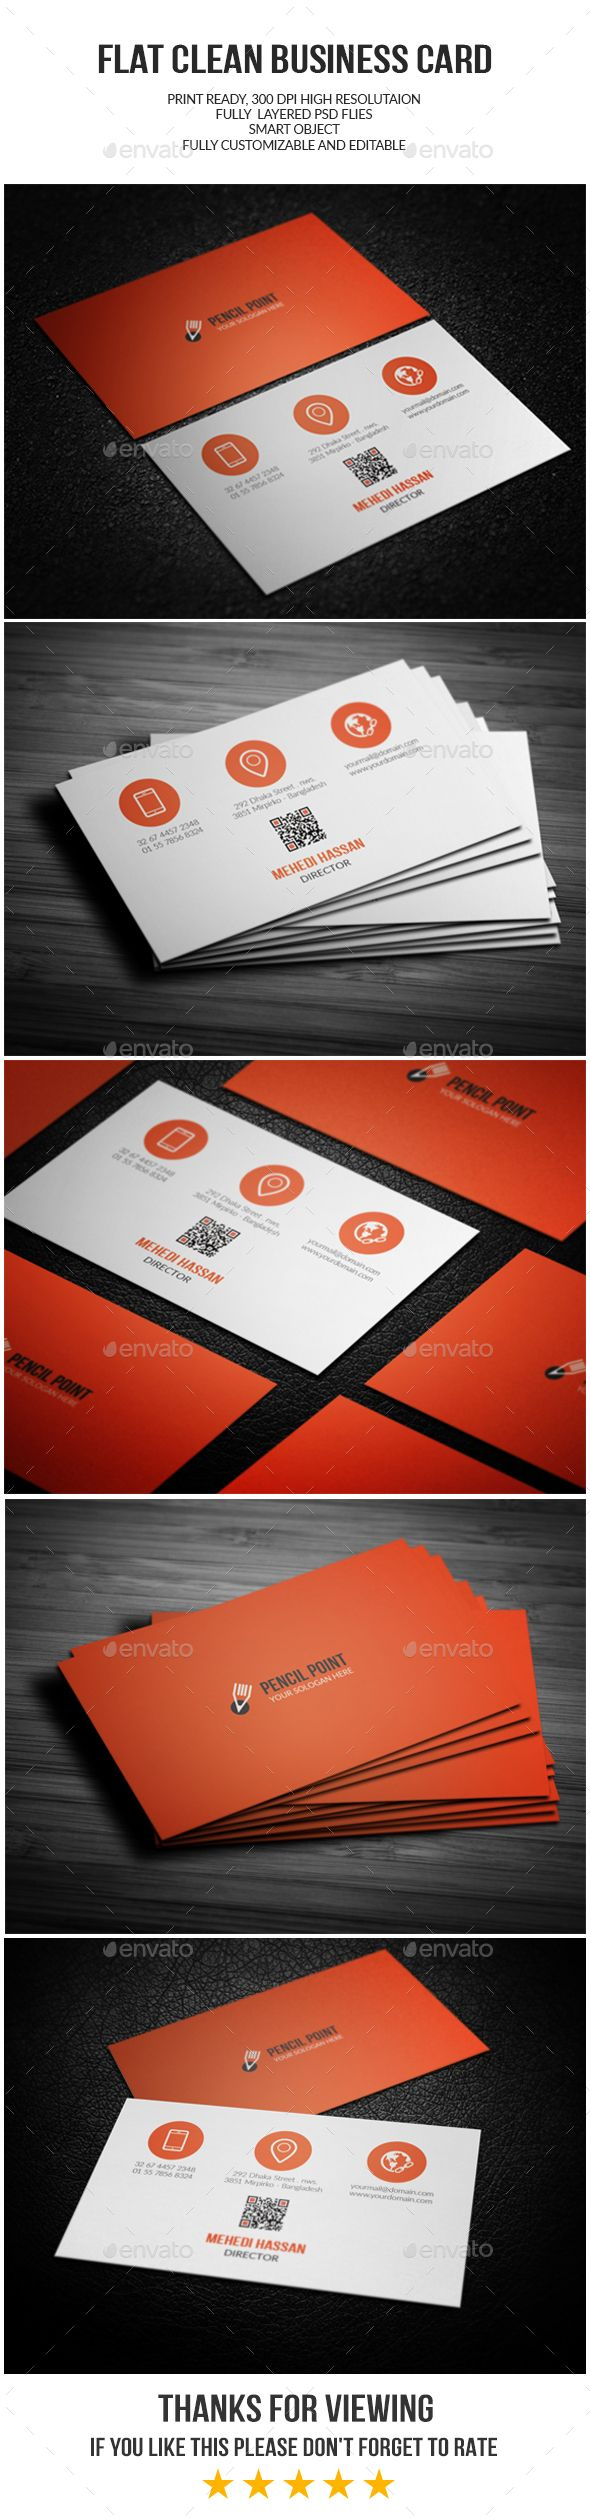 Business card templates overnight prints oukasfo tagsbusiness card templates overnight printsbusiness card templates kids overnight printswhat to include on a career networking business cardprinter reheart Image collections